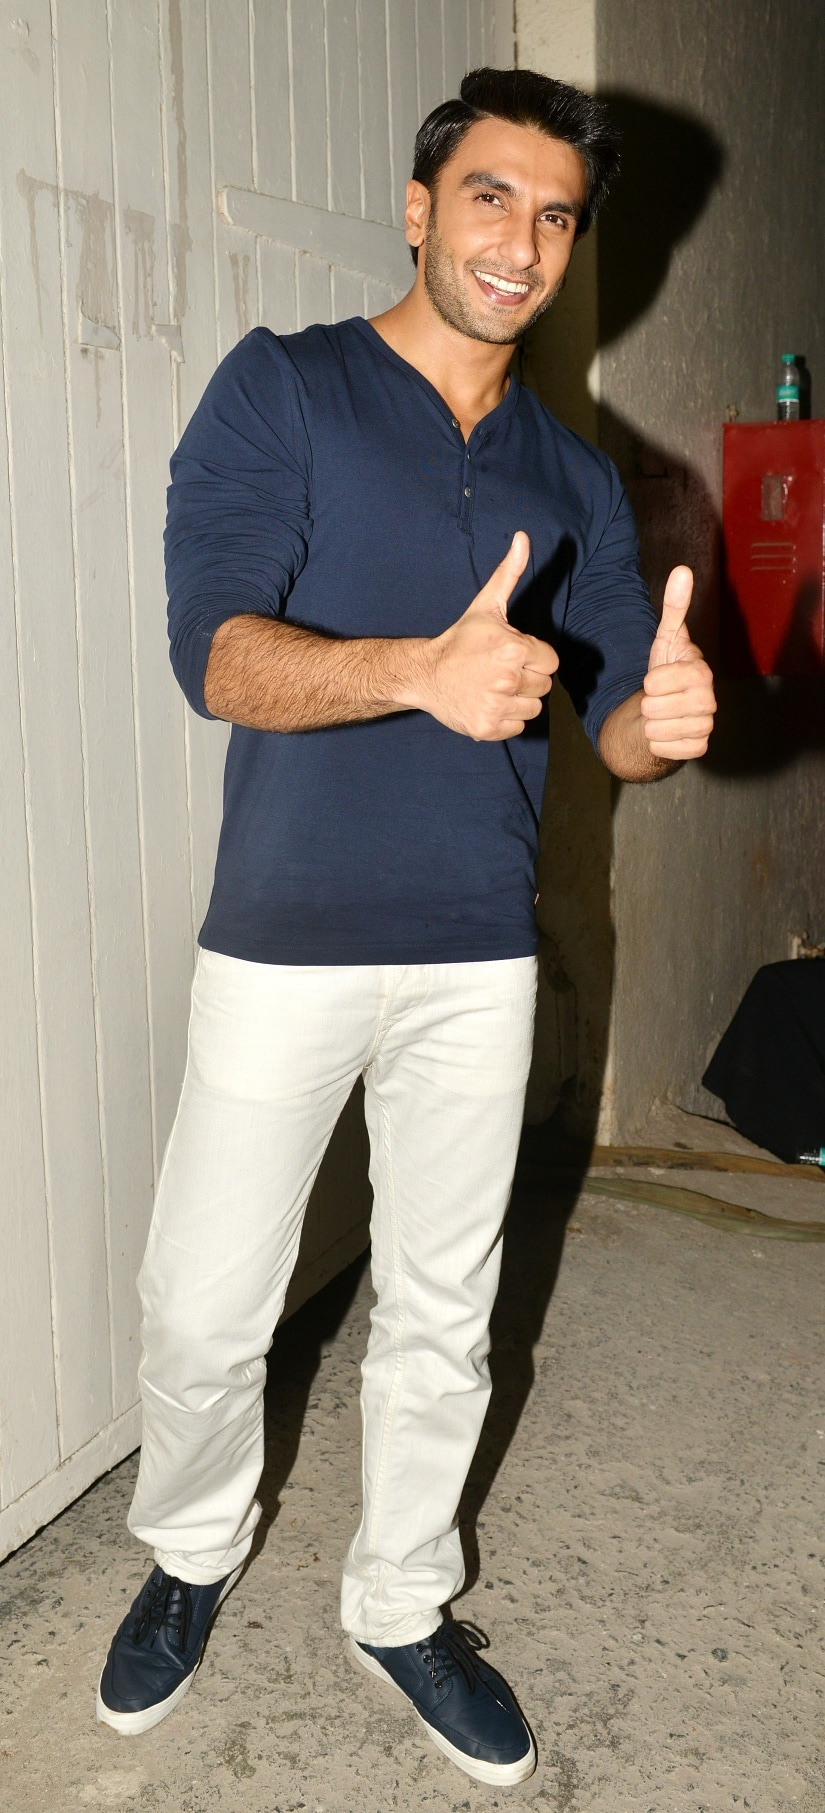 MUMBAI, INDIA MARCH 09: Ranveer Singh at Mehboob Studio in Mumbai.(Photo by Milind Shelte/India Today Group/Getty Images)